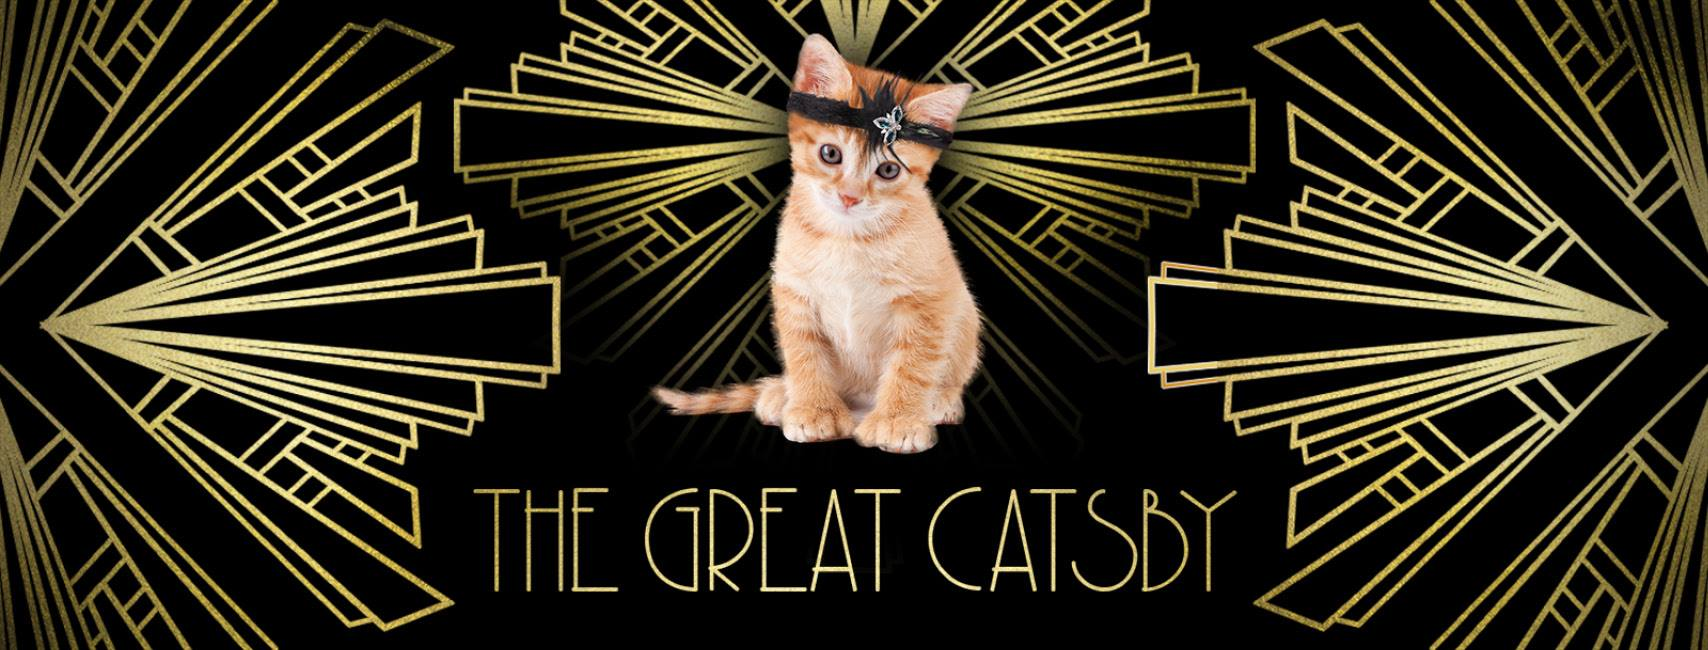 The Great Catsby Kitten Event with OK Humane Society